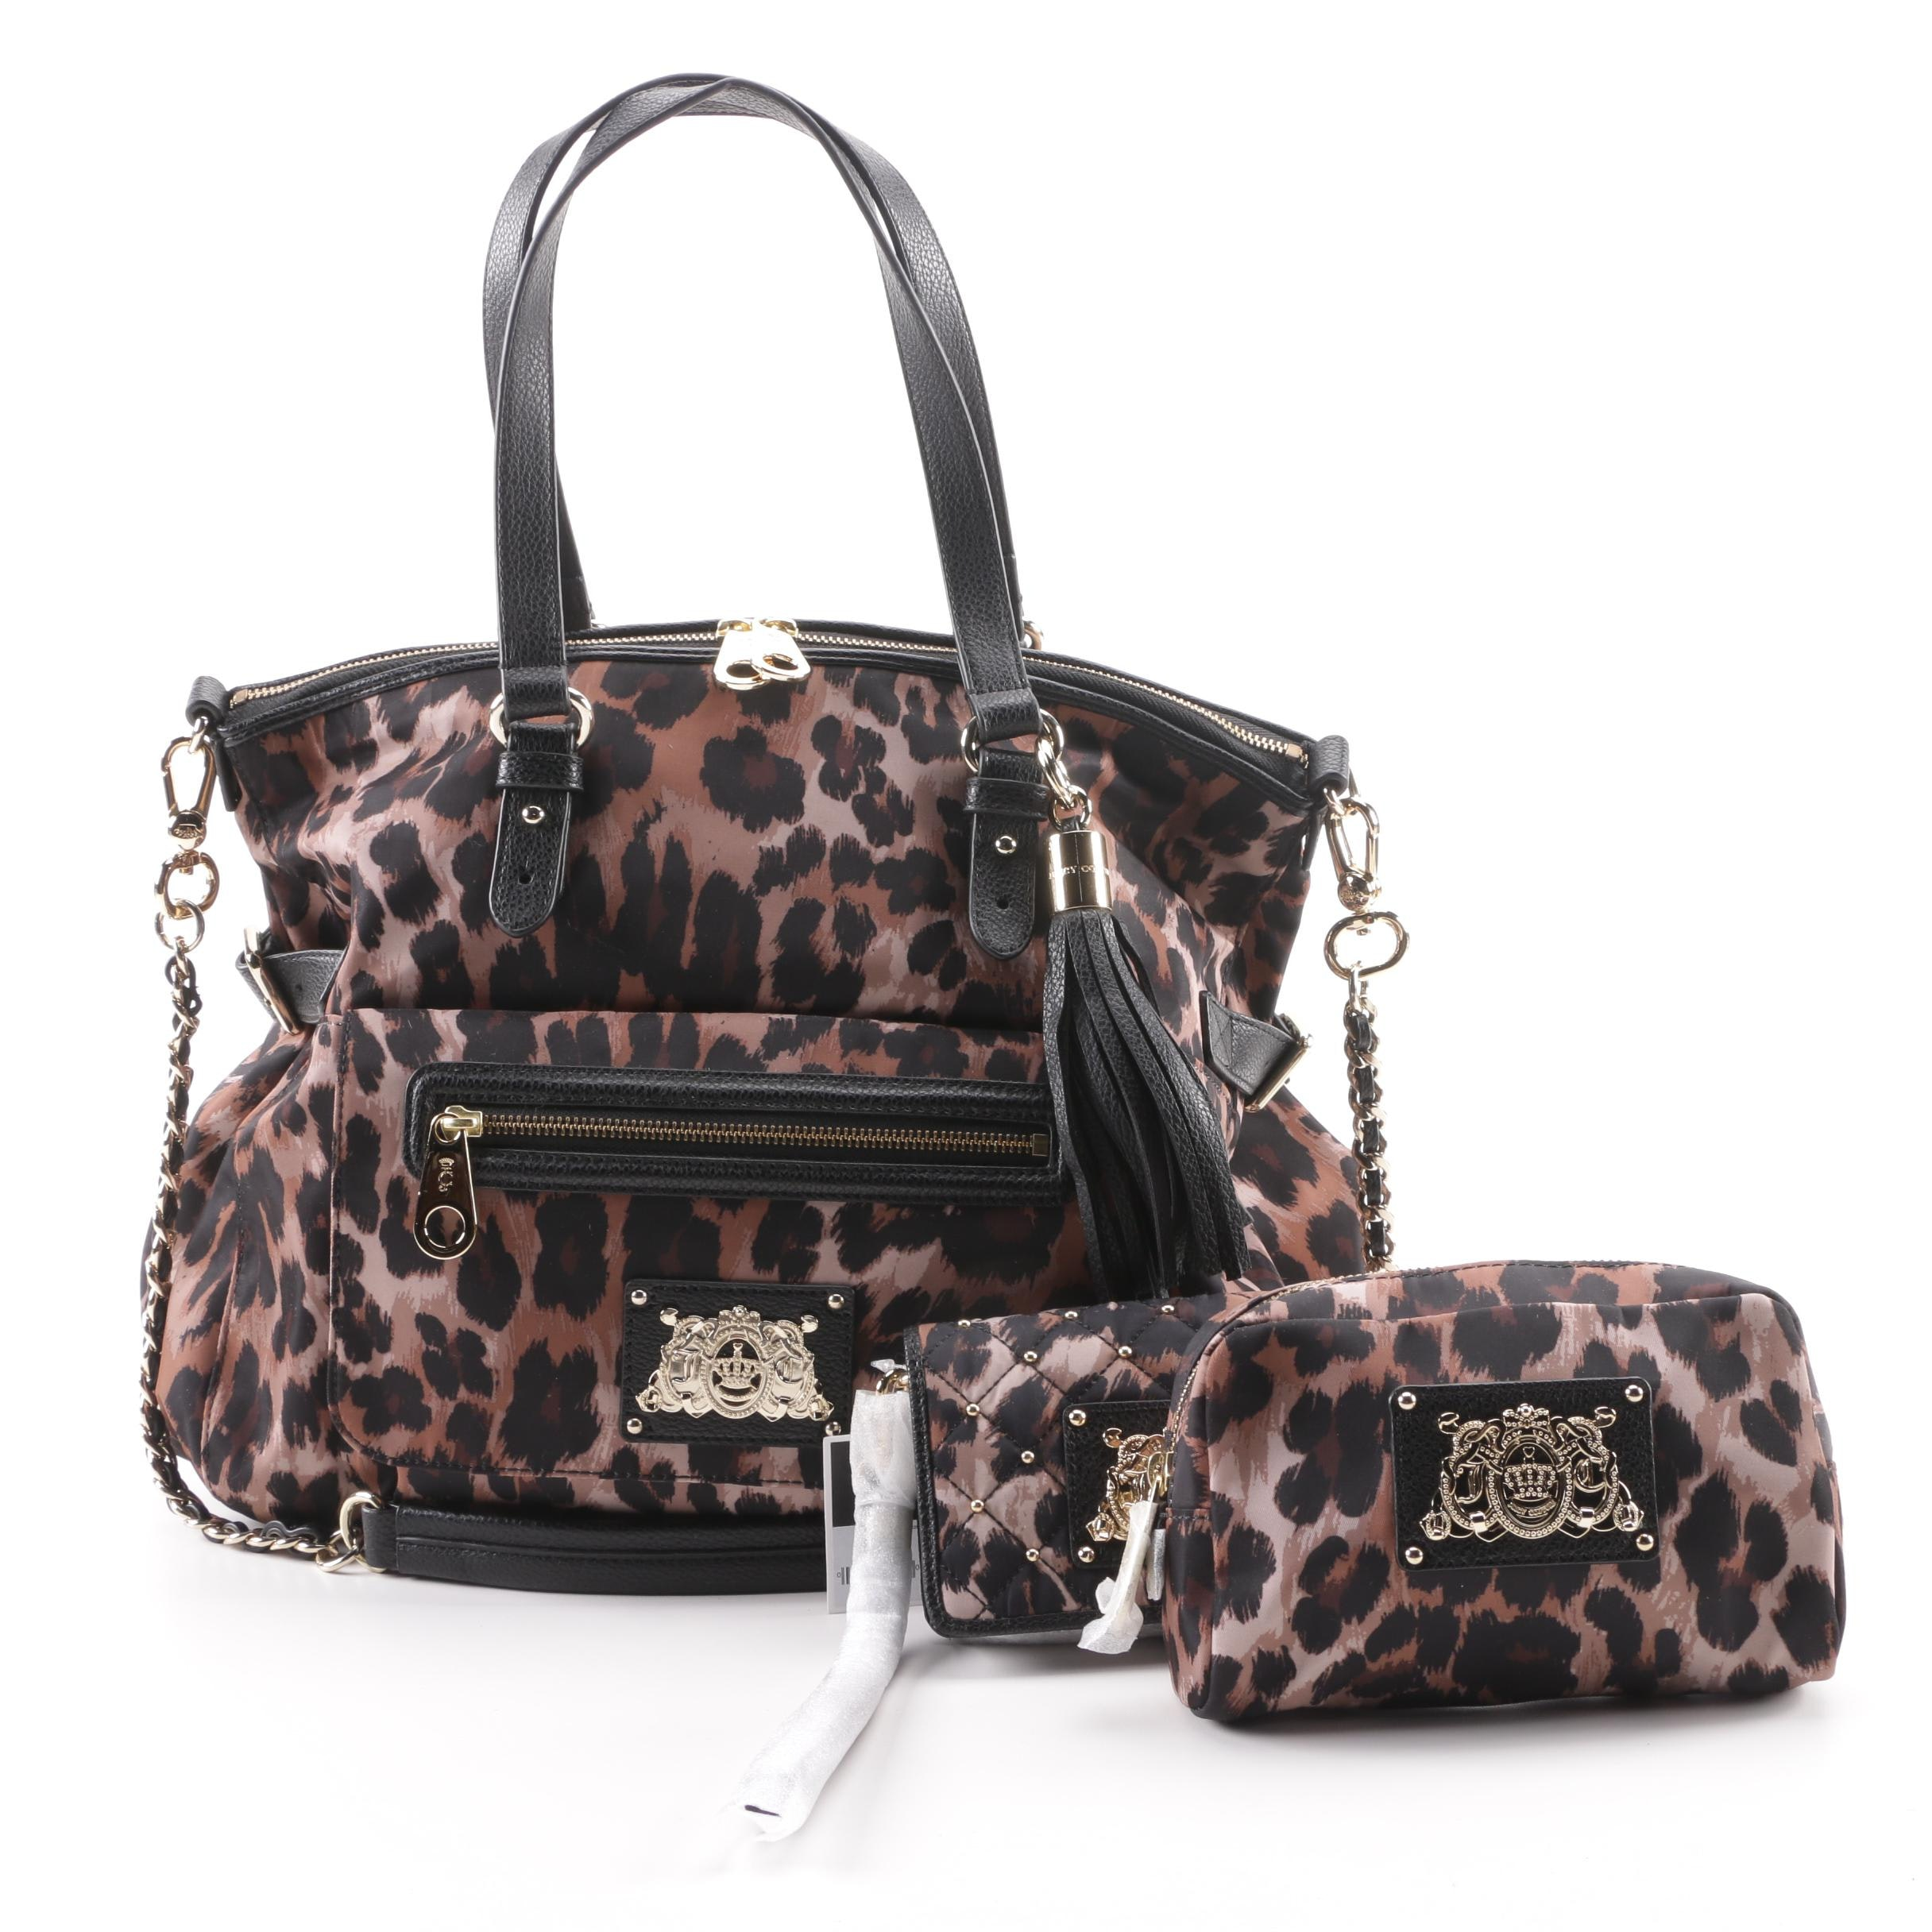 Juicy Couture Nylon Animal Print Satchel and Matching Accessories